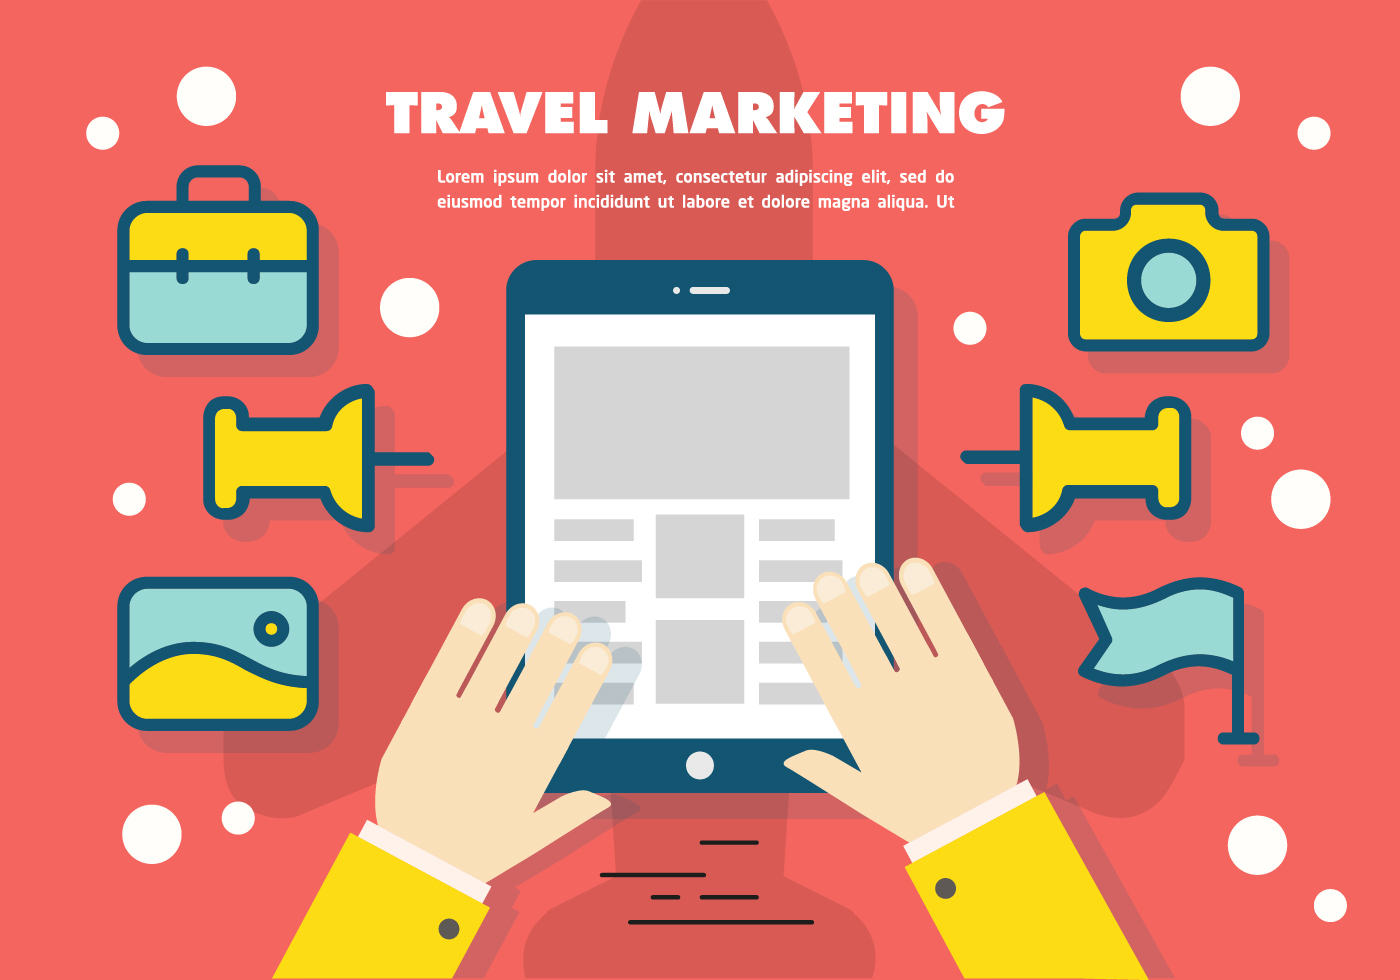 free flat travel marketing vector background